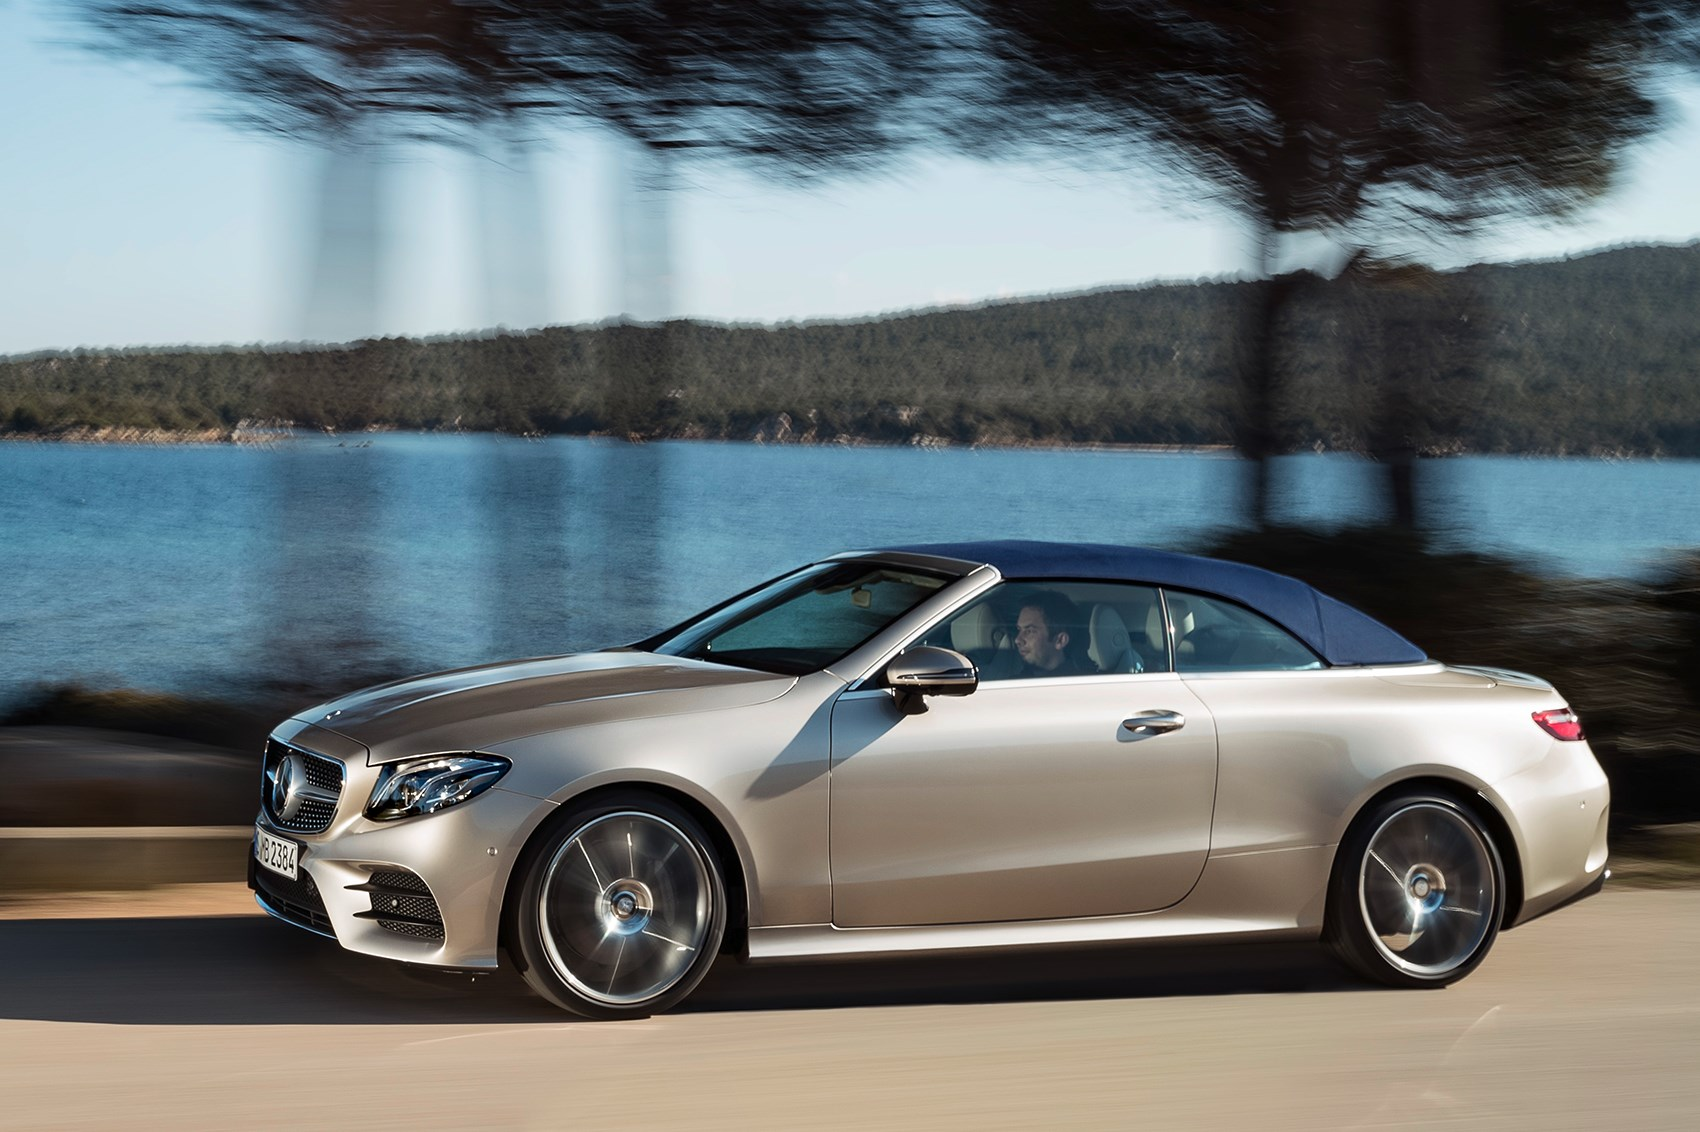 Merc blows the roof off the mercedes e class cabriolet at - Mercedes car show ...